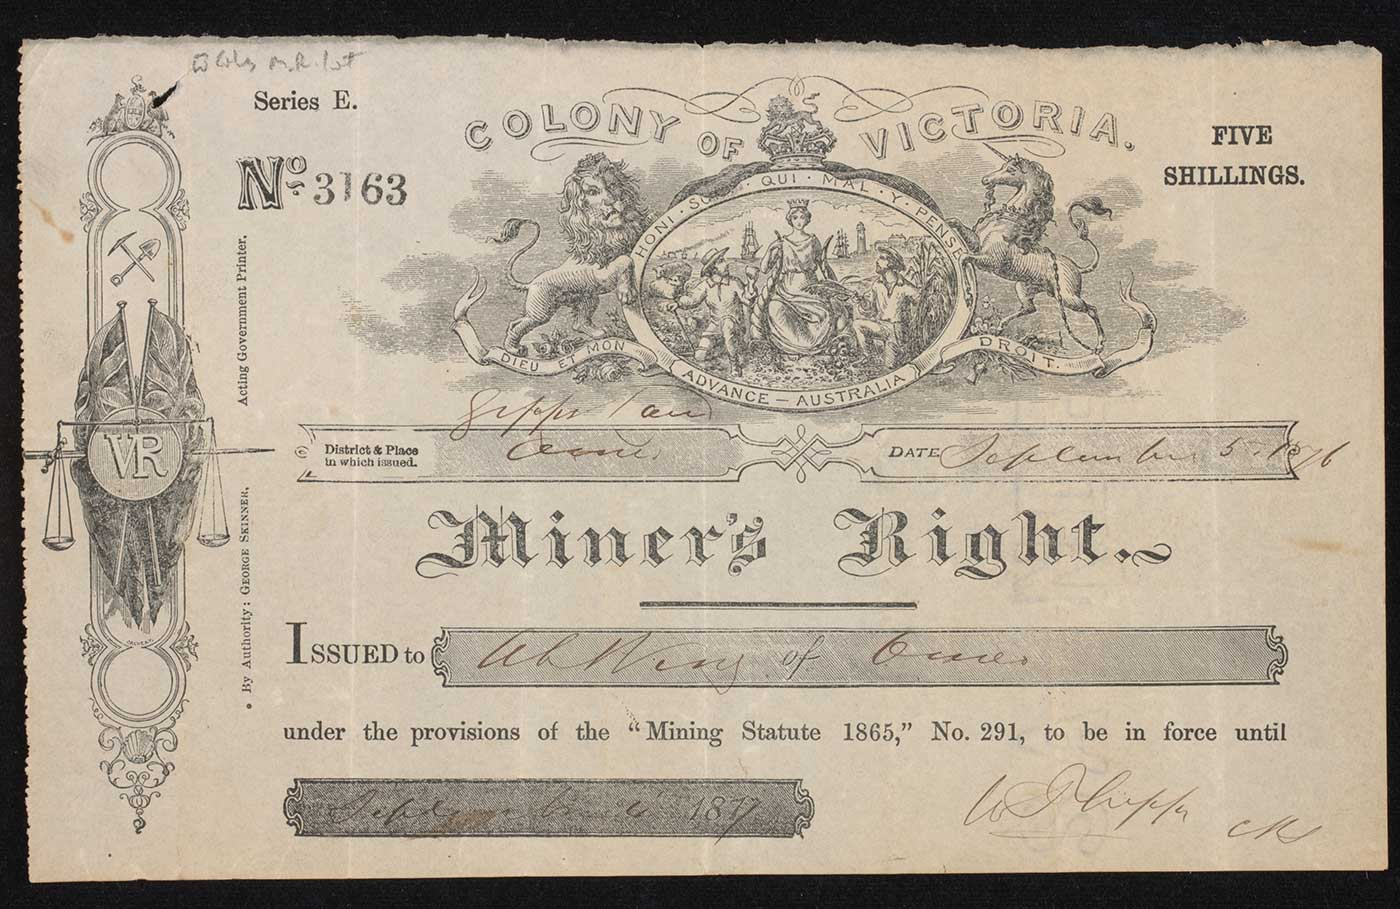 Photograph of a' Miner's Right' printed on paper under a 'COLONY OF VICTORIA' coat of arms. Text has been handwritten in several places. - click to view larger image